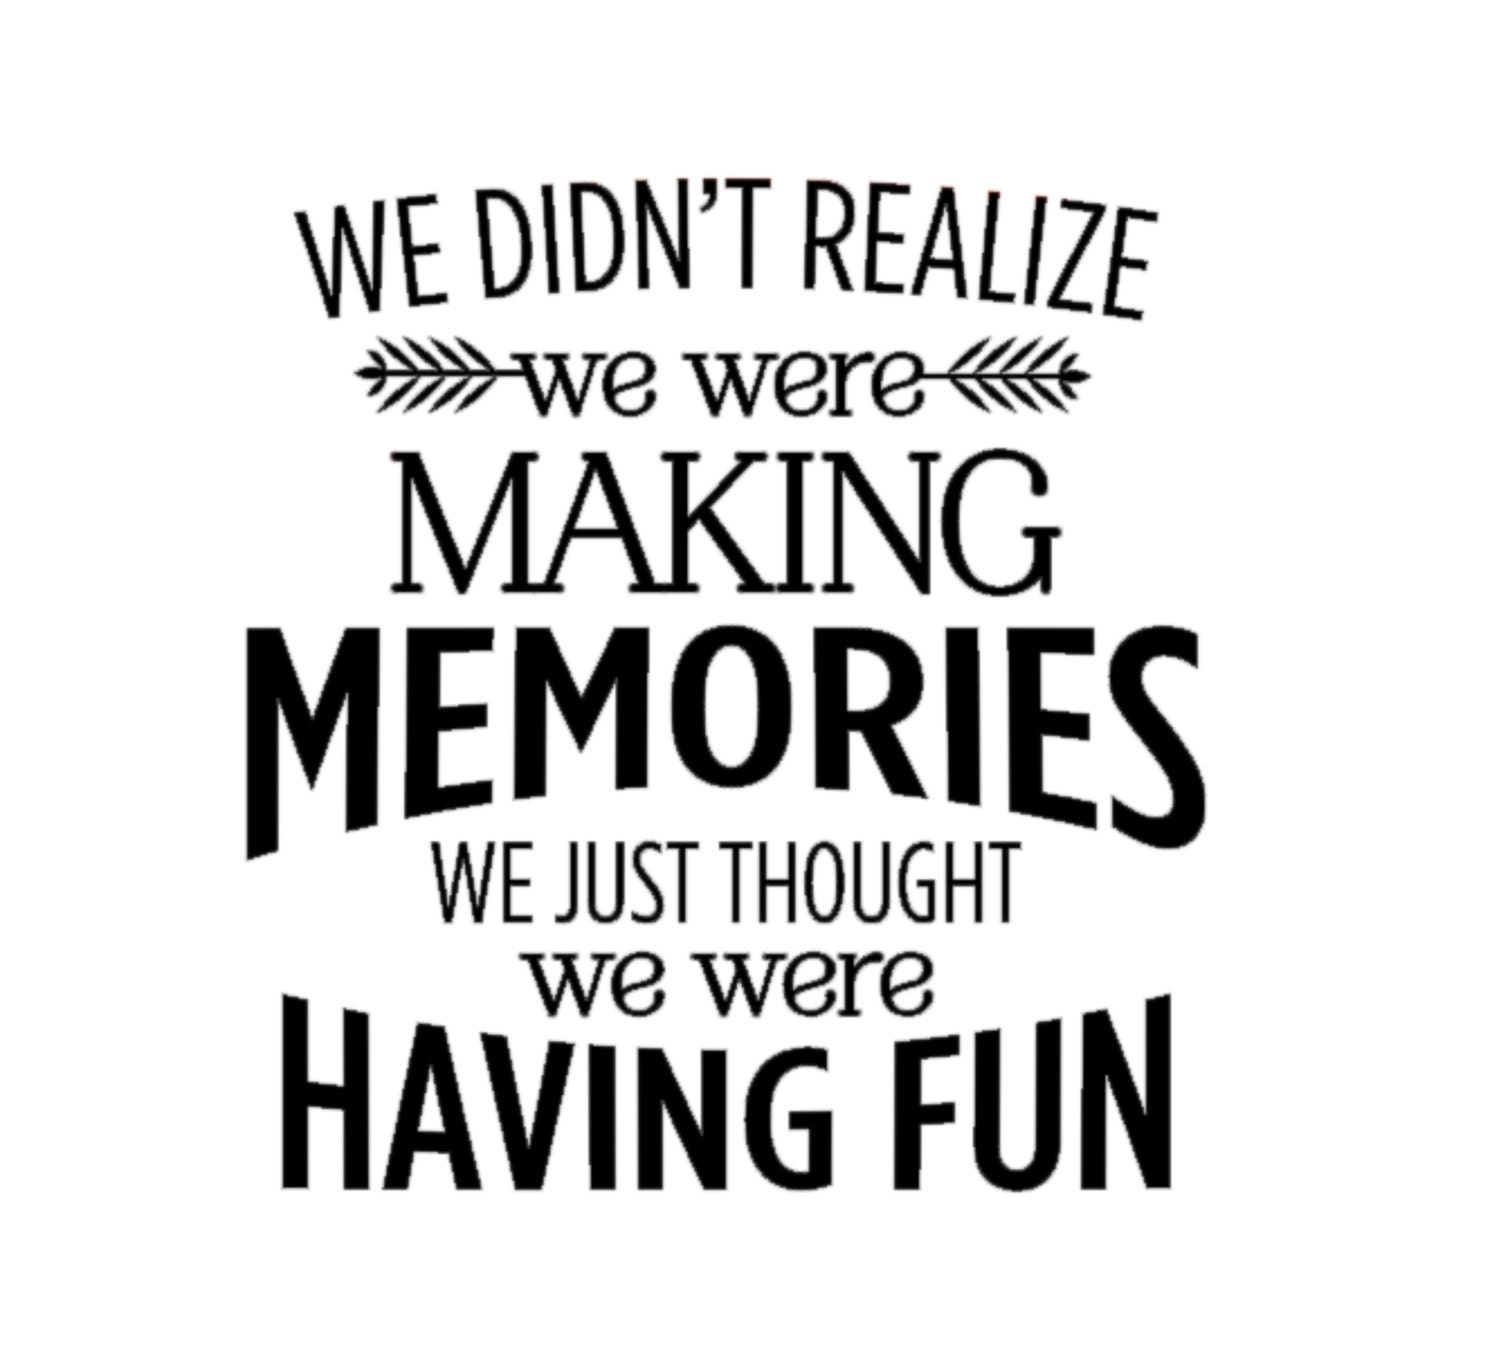 We Didn't Realize We Were Making Memories We Just Thought